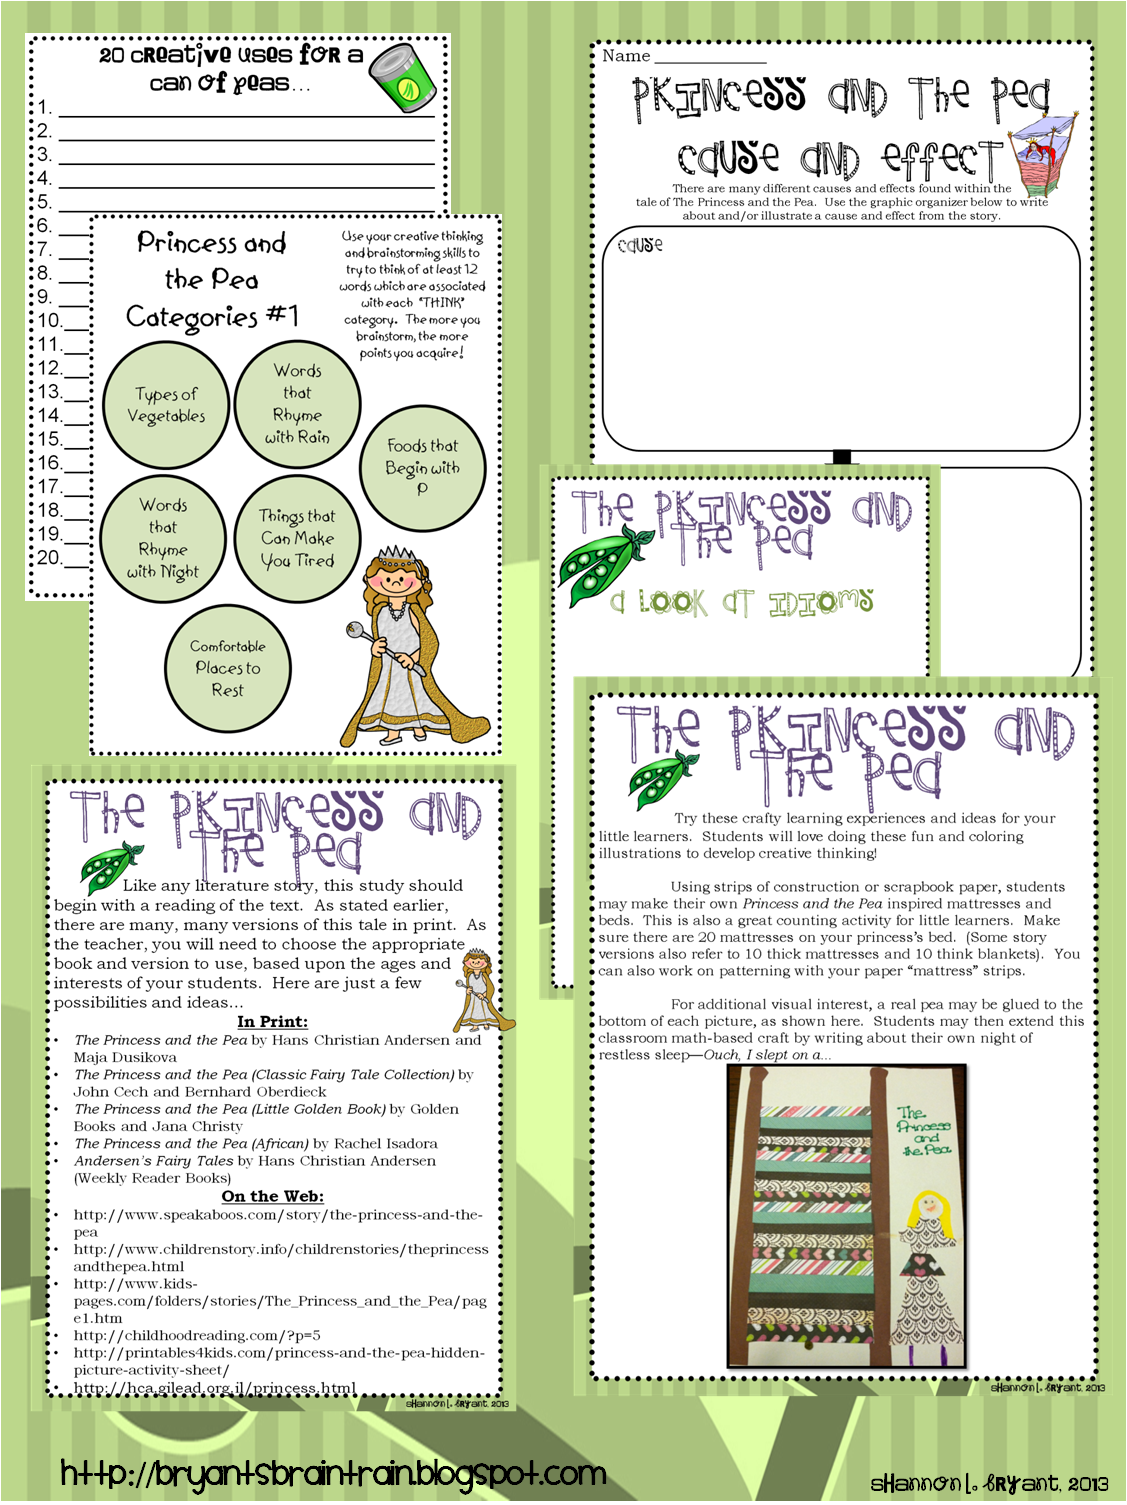 analysis of the princess and the pea Library the princess and the pea download pdf cite textual evidence to support analysis of what the text says explicitly as well as inferences drawn from the text.